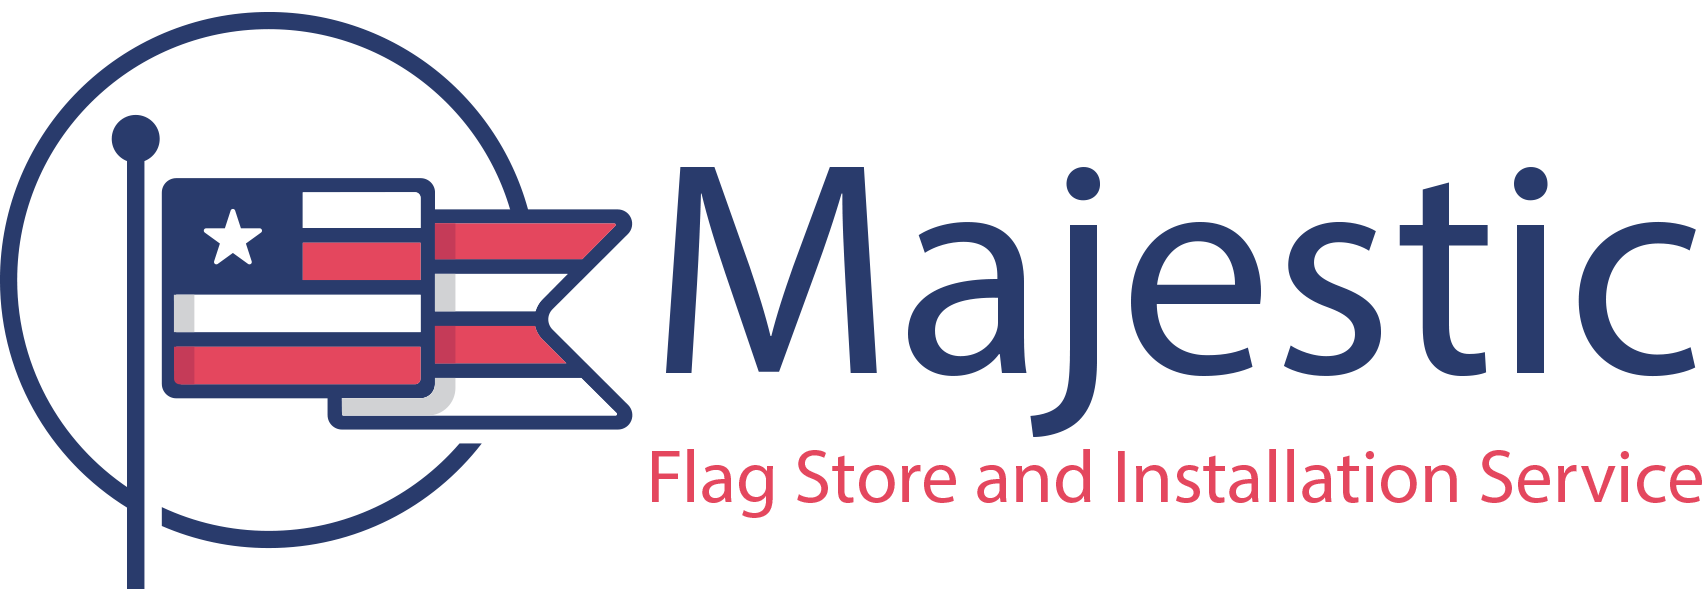 Majestic Flag Store